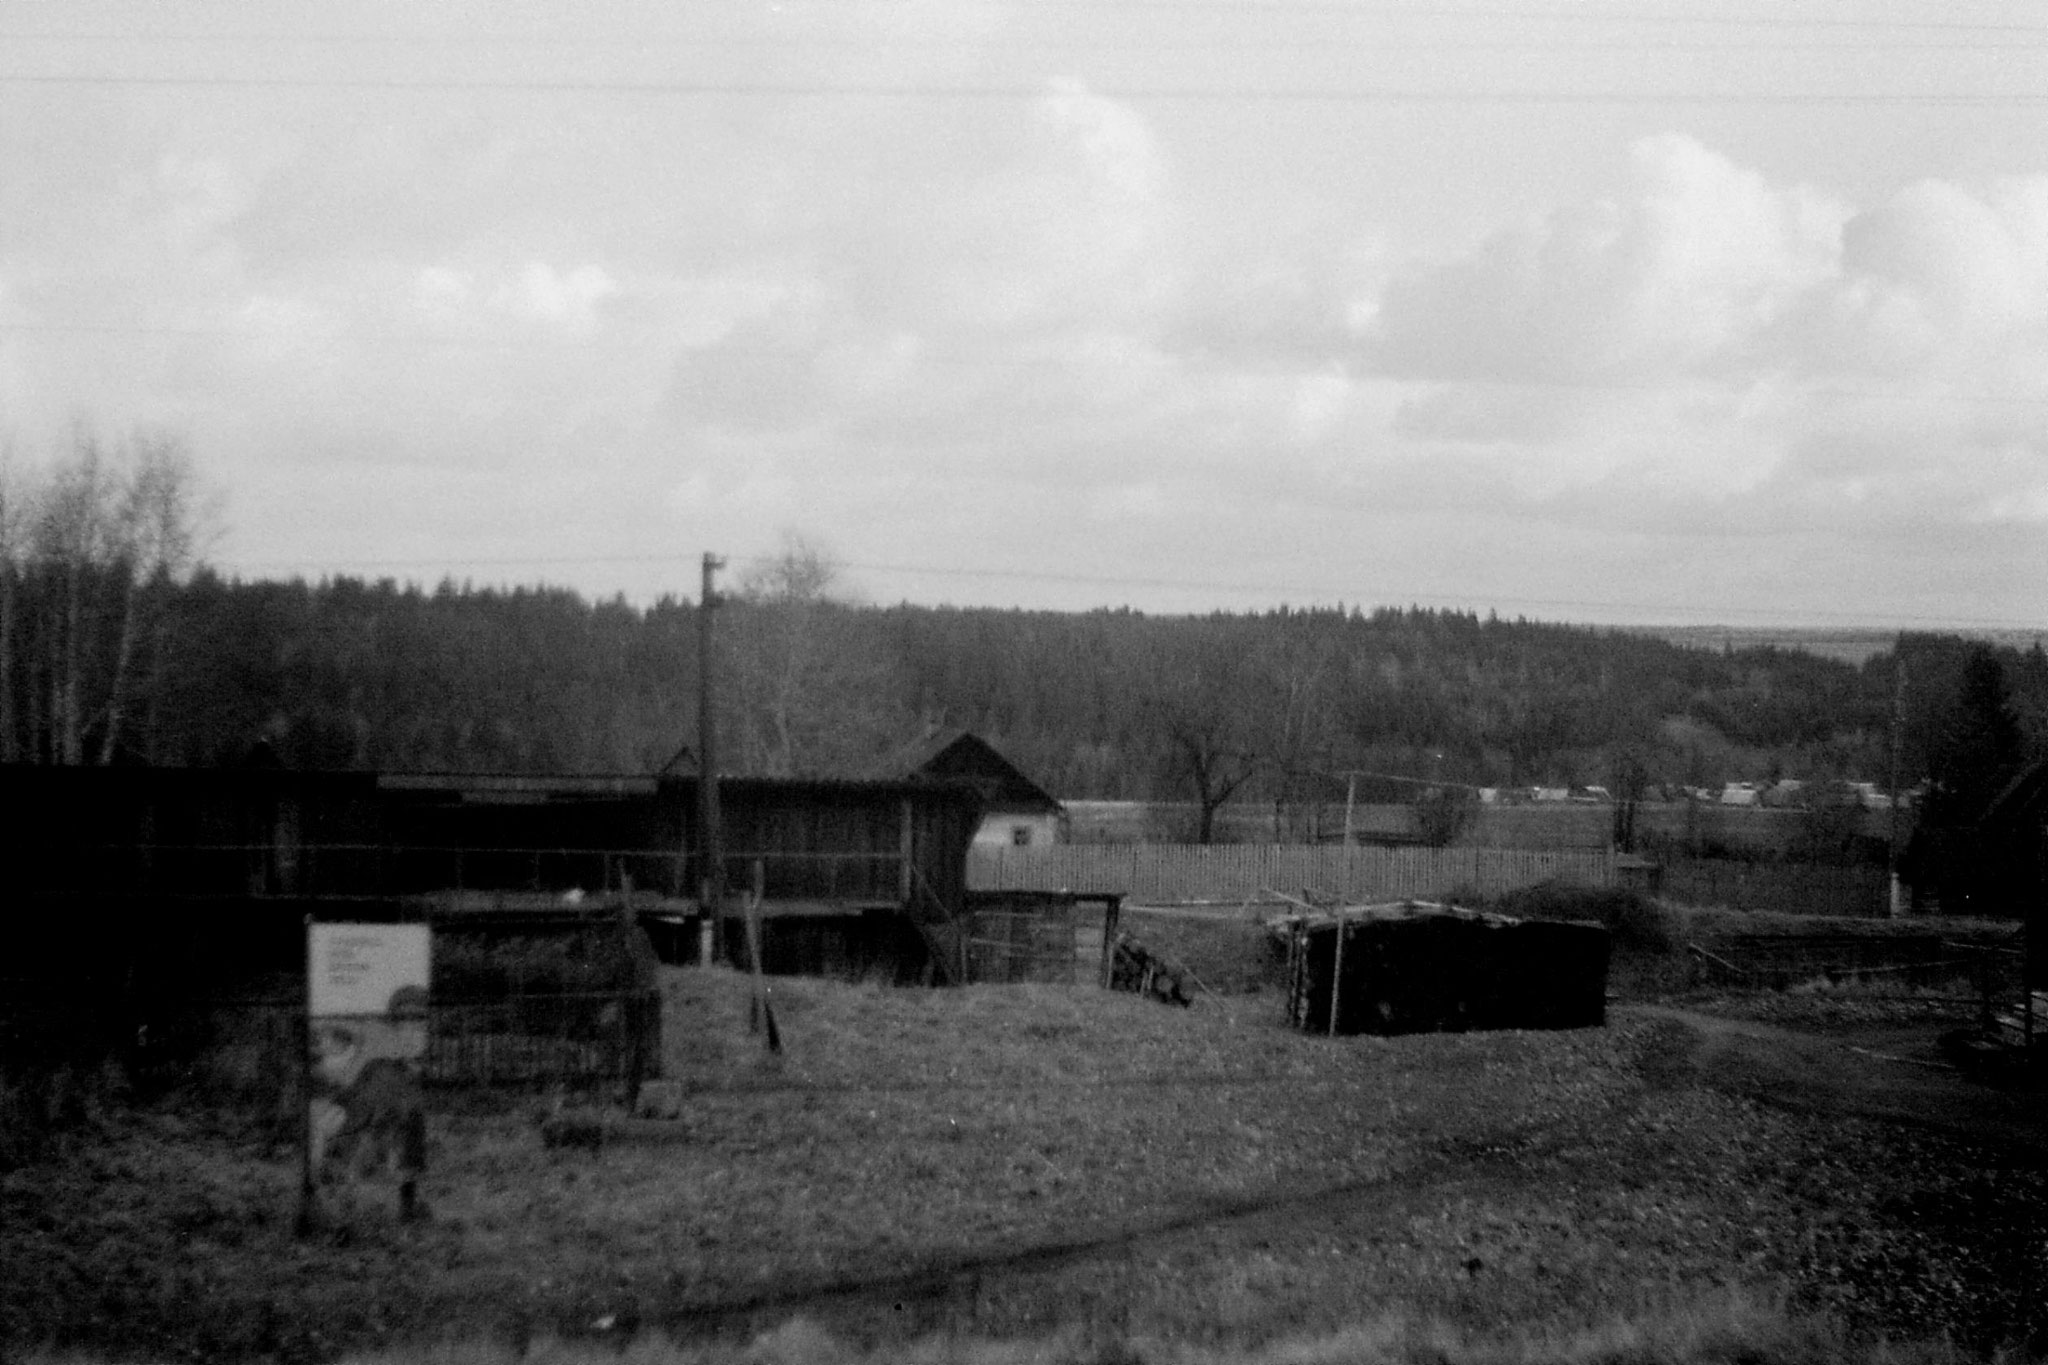 19/10/1988: 21: from Siberian Express between Balezino and Perm